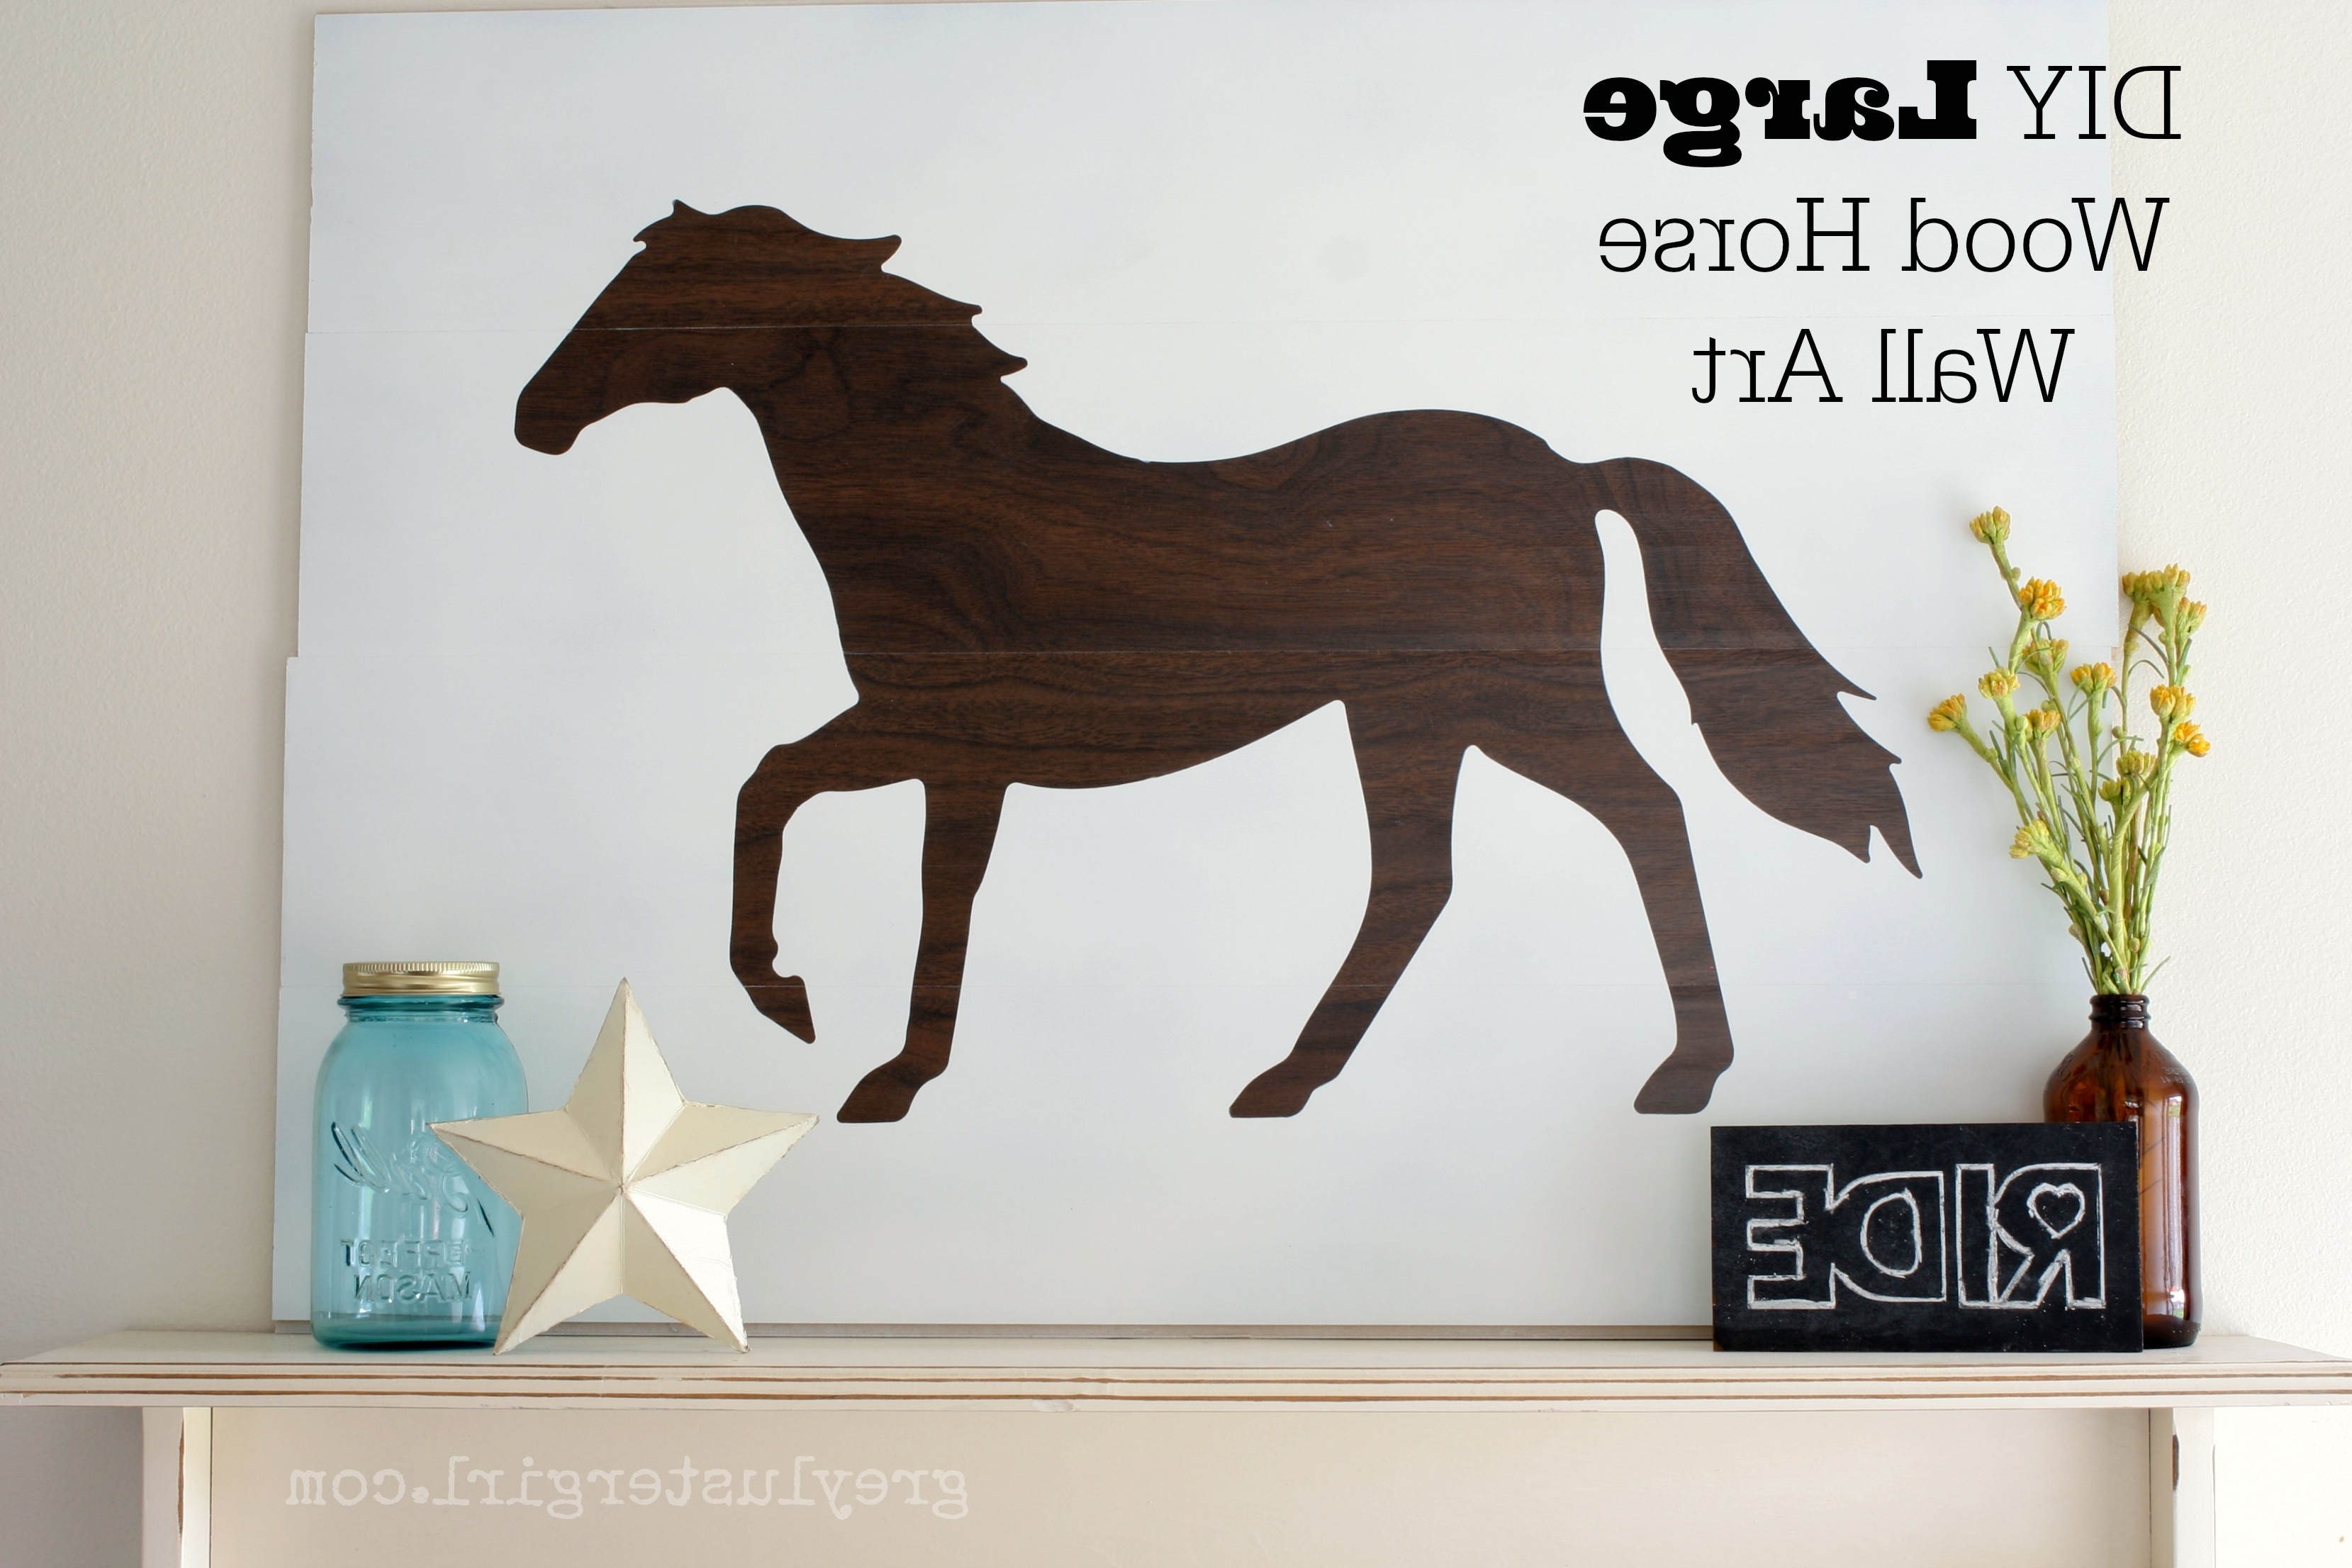 Fabric Animal Silhouette Wall Art Inside Current Large Wood Horse Wall Art And Silhouette Portrait Giveaway – (View 3 of 15)